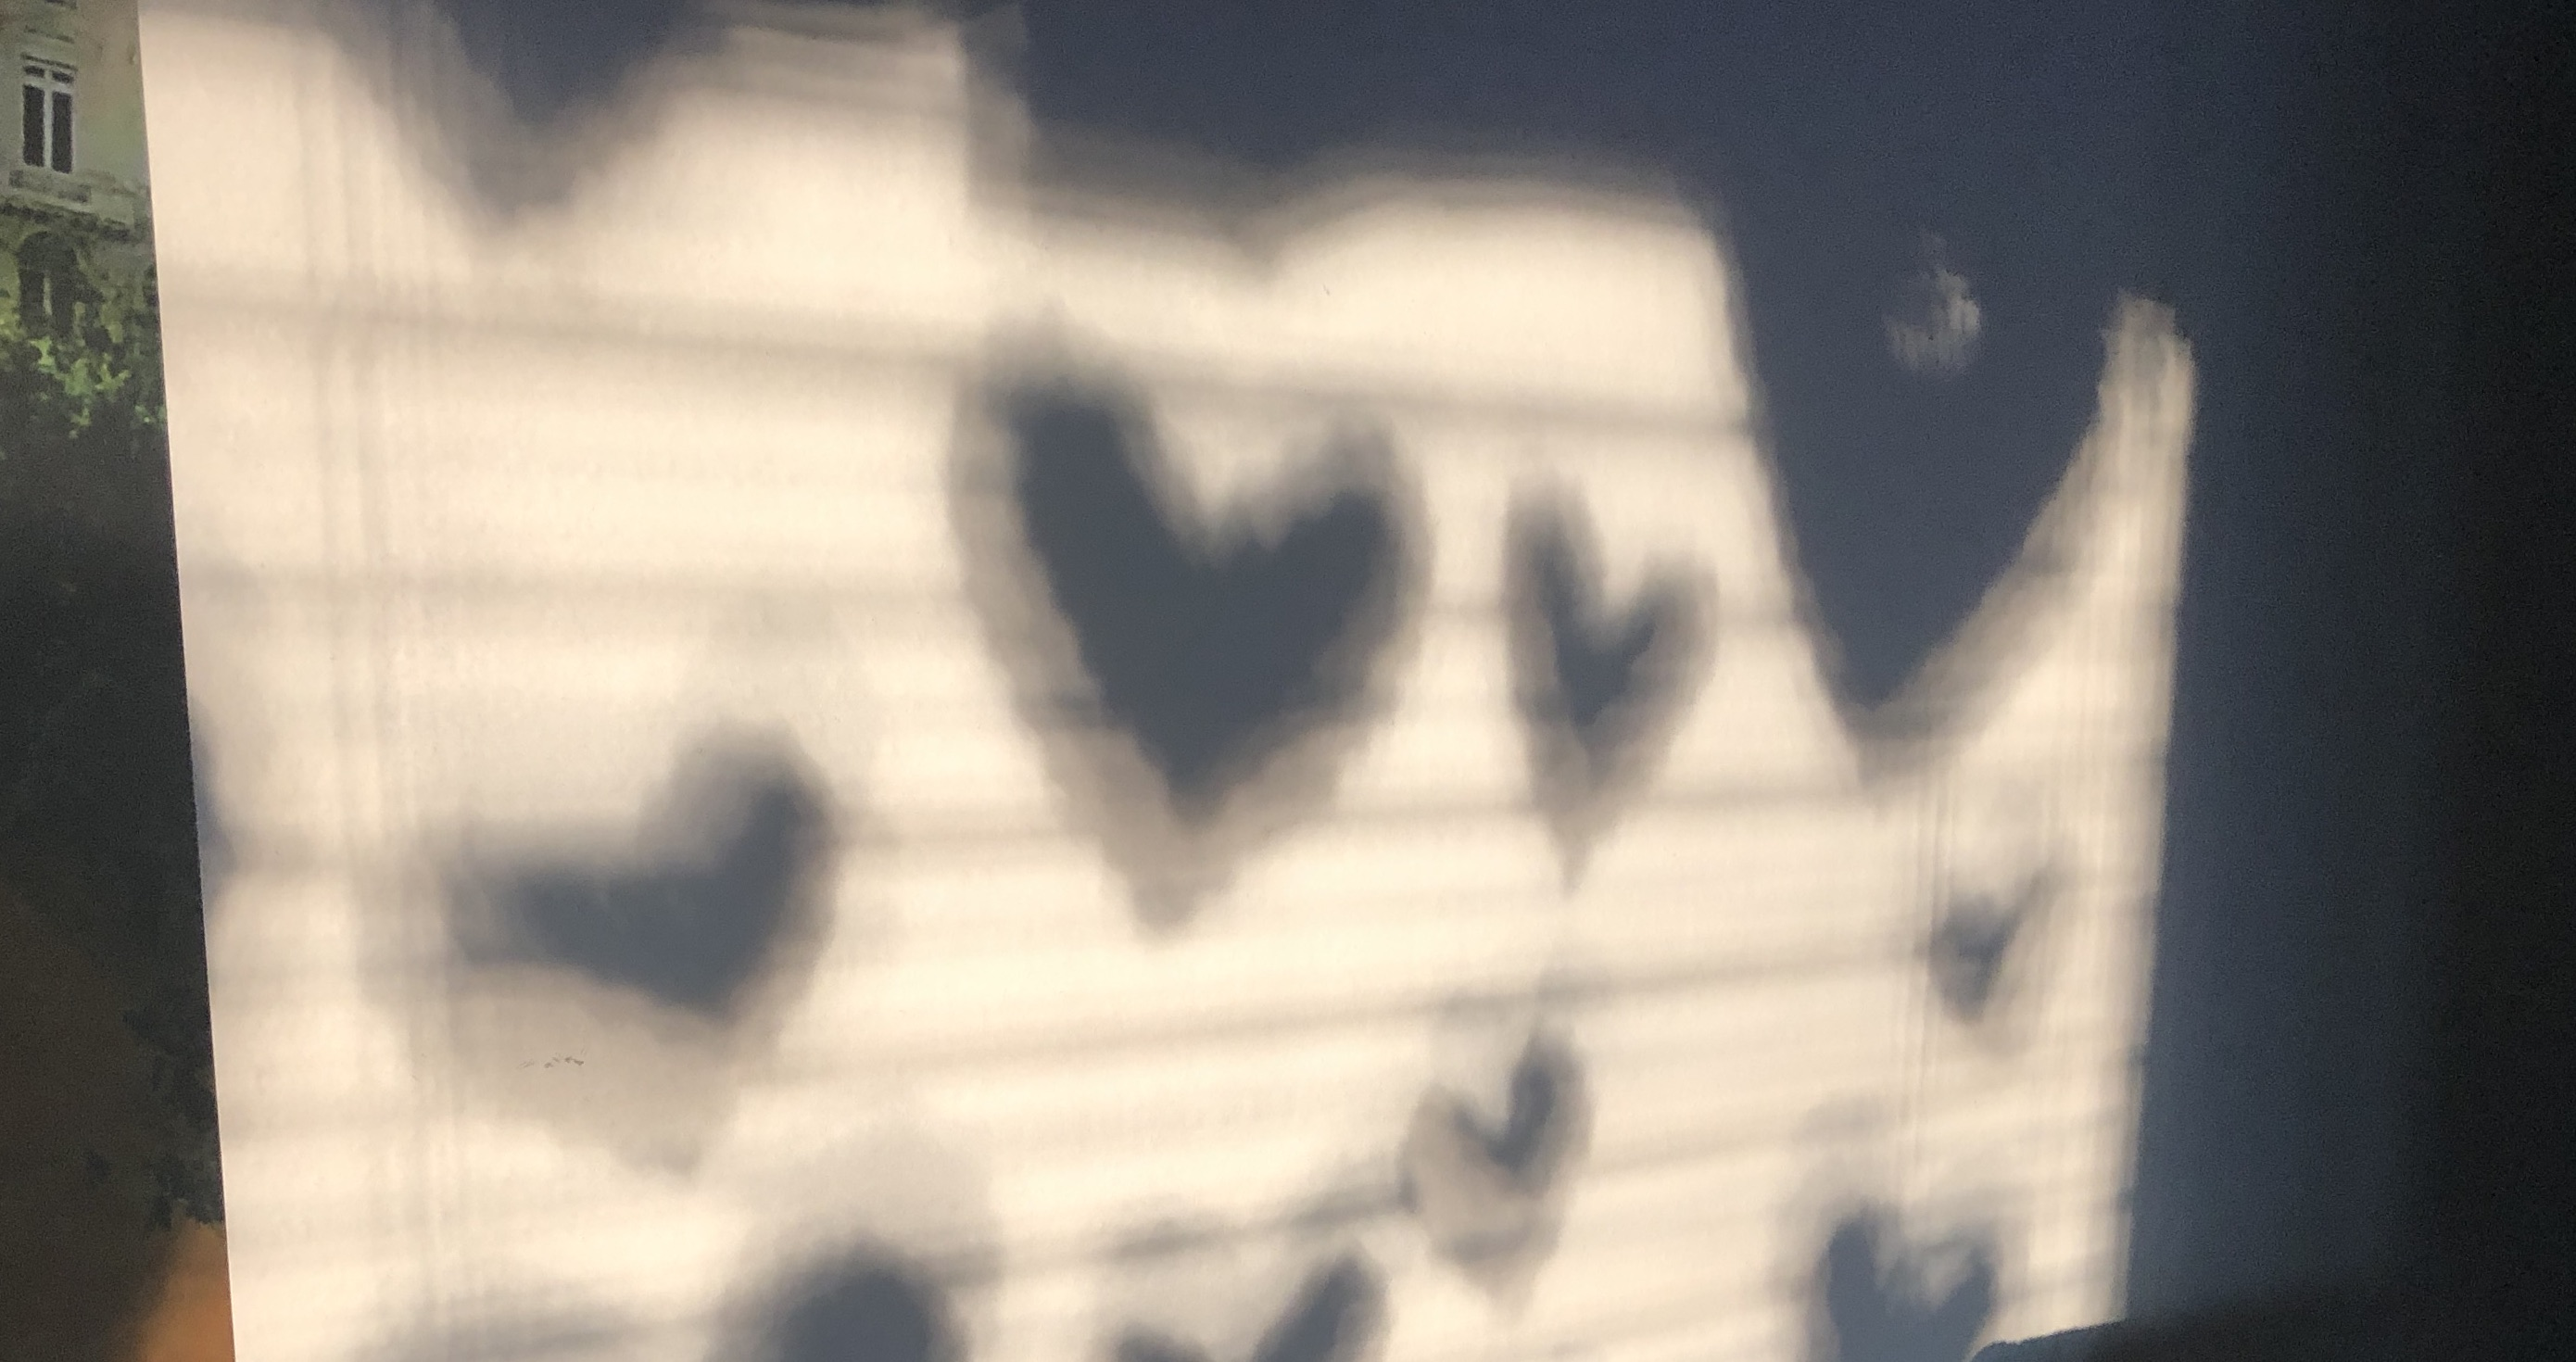 Image of shadows of Covid pandemic cut-out hearts on a wall